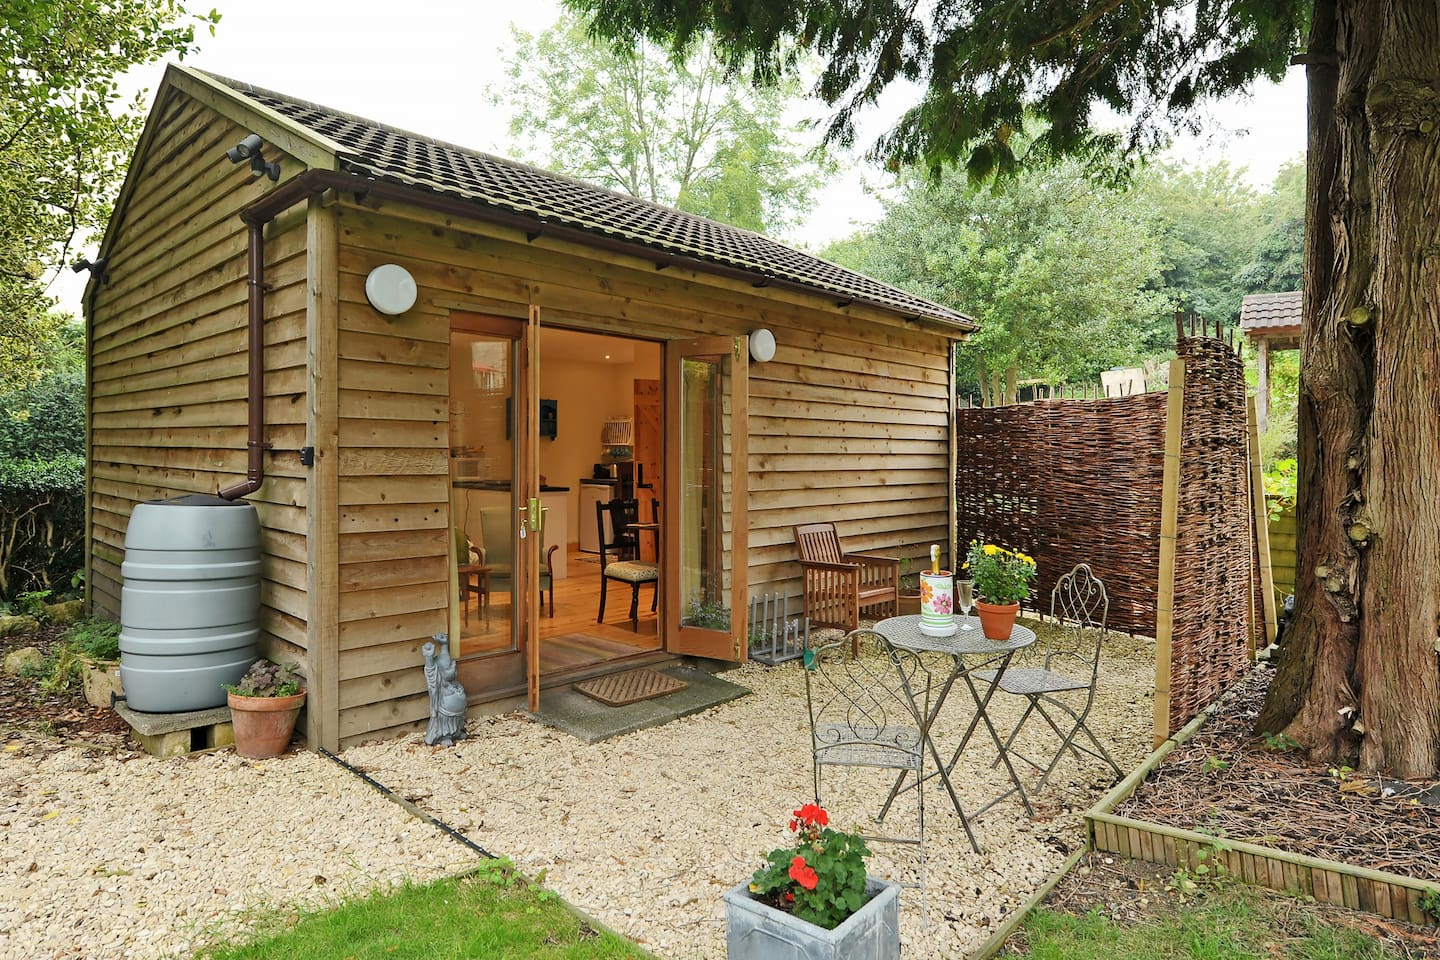 The Garden Room, quiet, with your own entrance and garden space